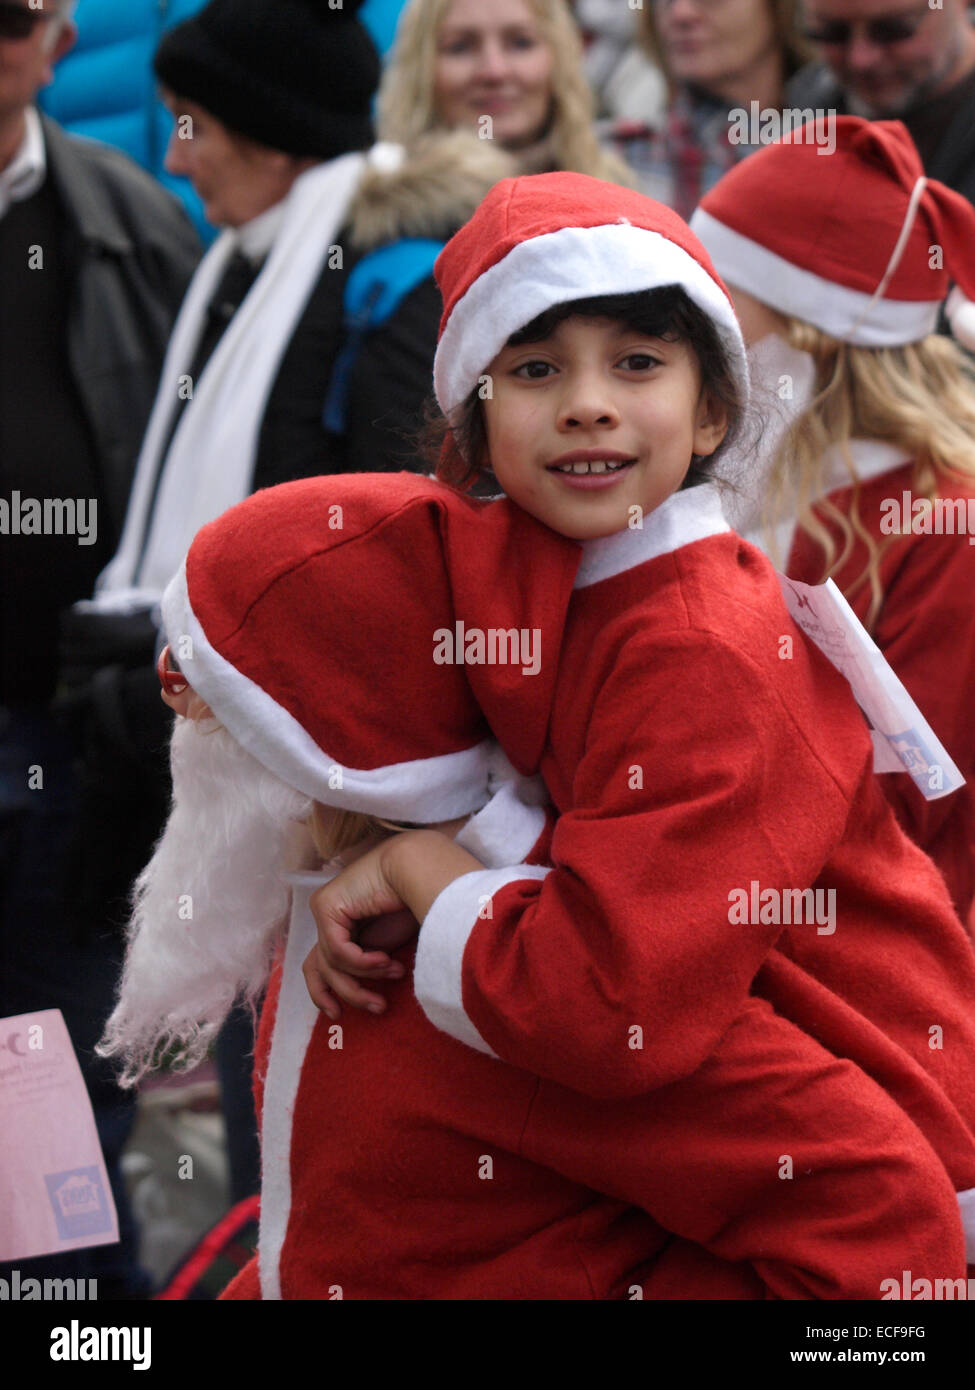 Child give a piggy back to another child, dressed in Santa suits for the Charity Santa run at the Padstow Christmas - Stock Image